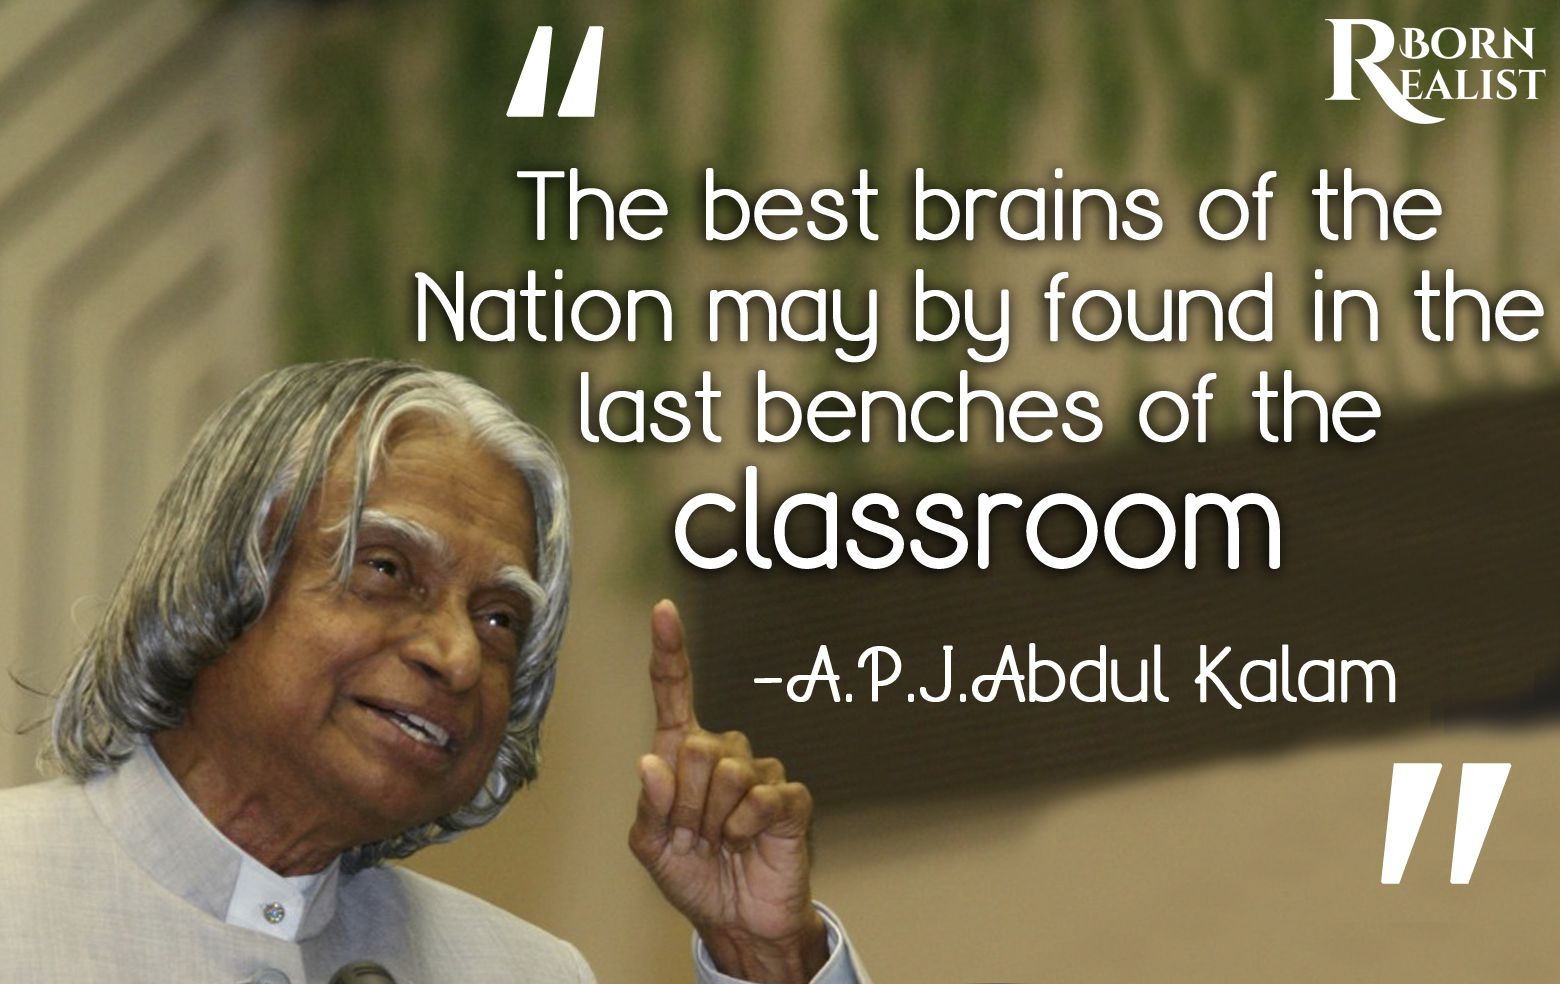 The best brains of the Nation may be found in the last benches of the classroom. -APJ Abdul Kalam [1560X984]